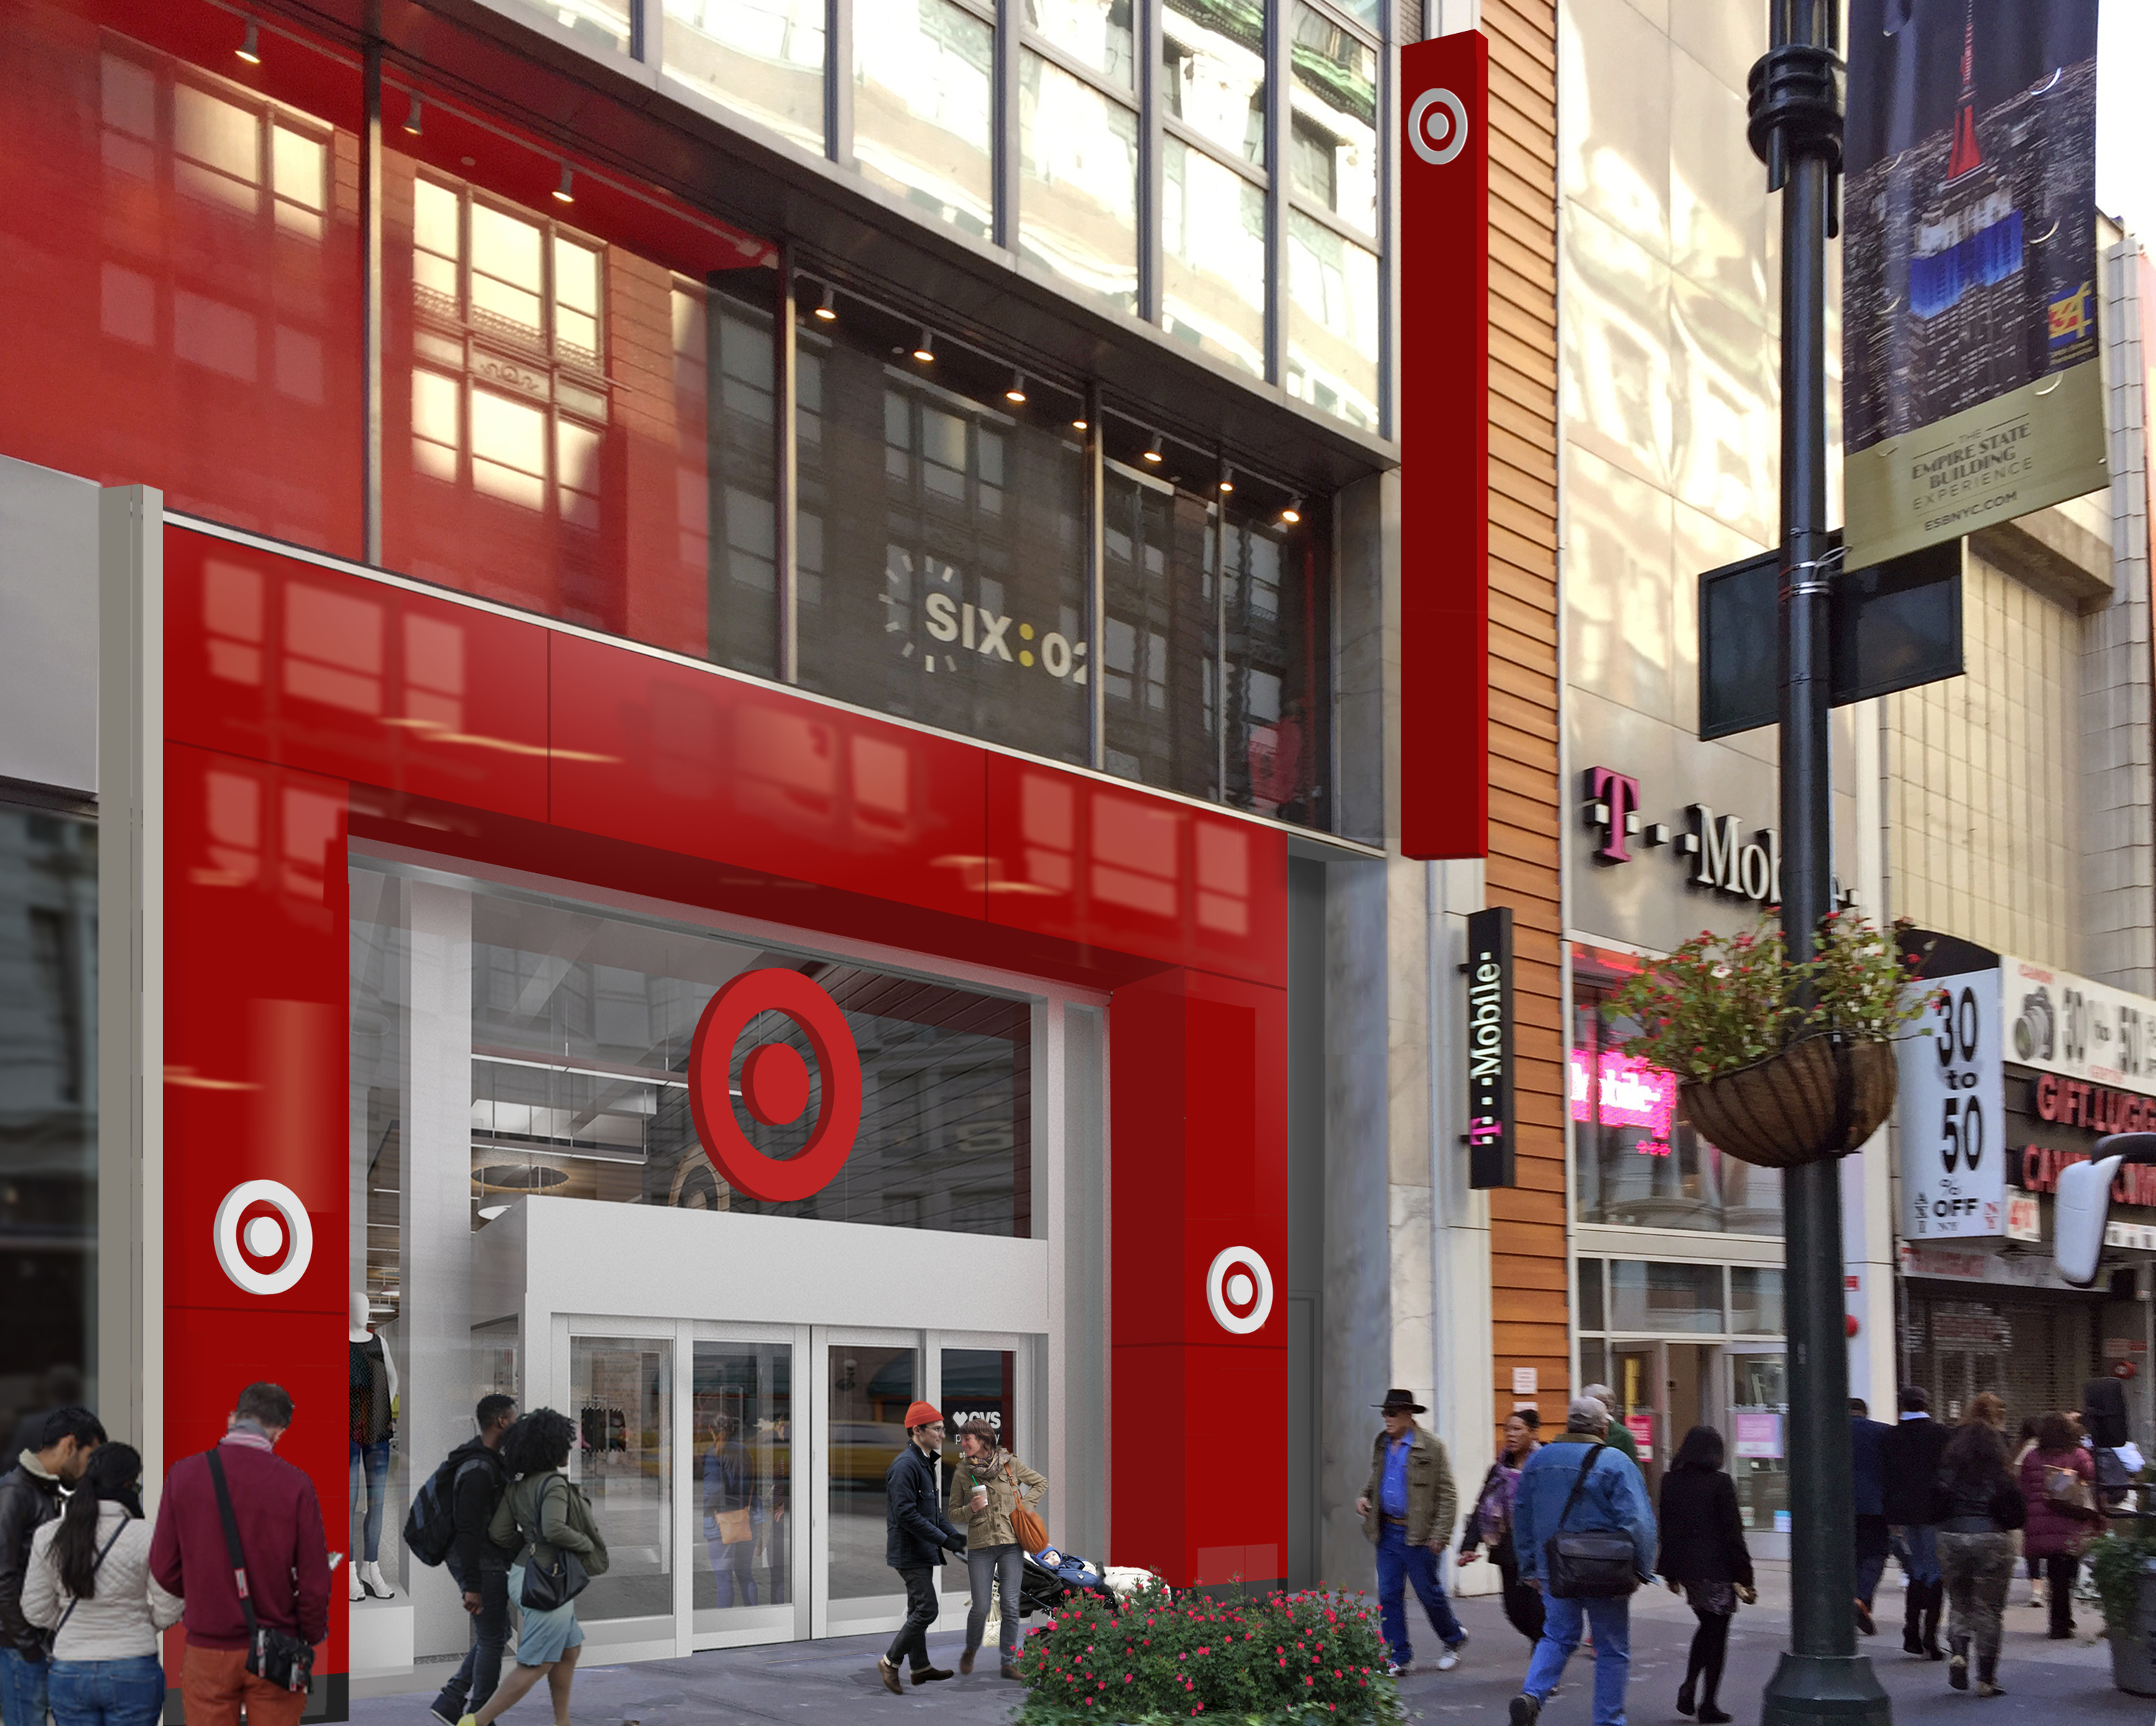 A brand-new Target is opening in Midtown Manhattan this year